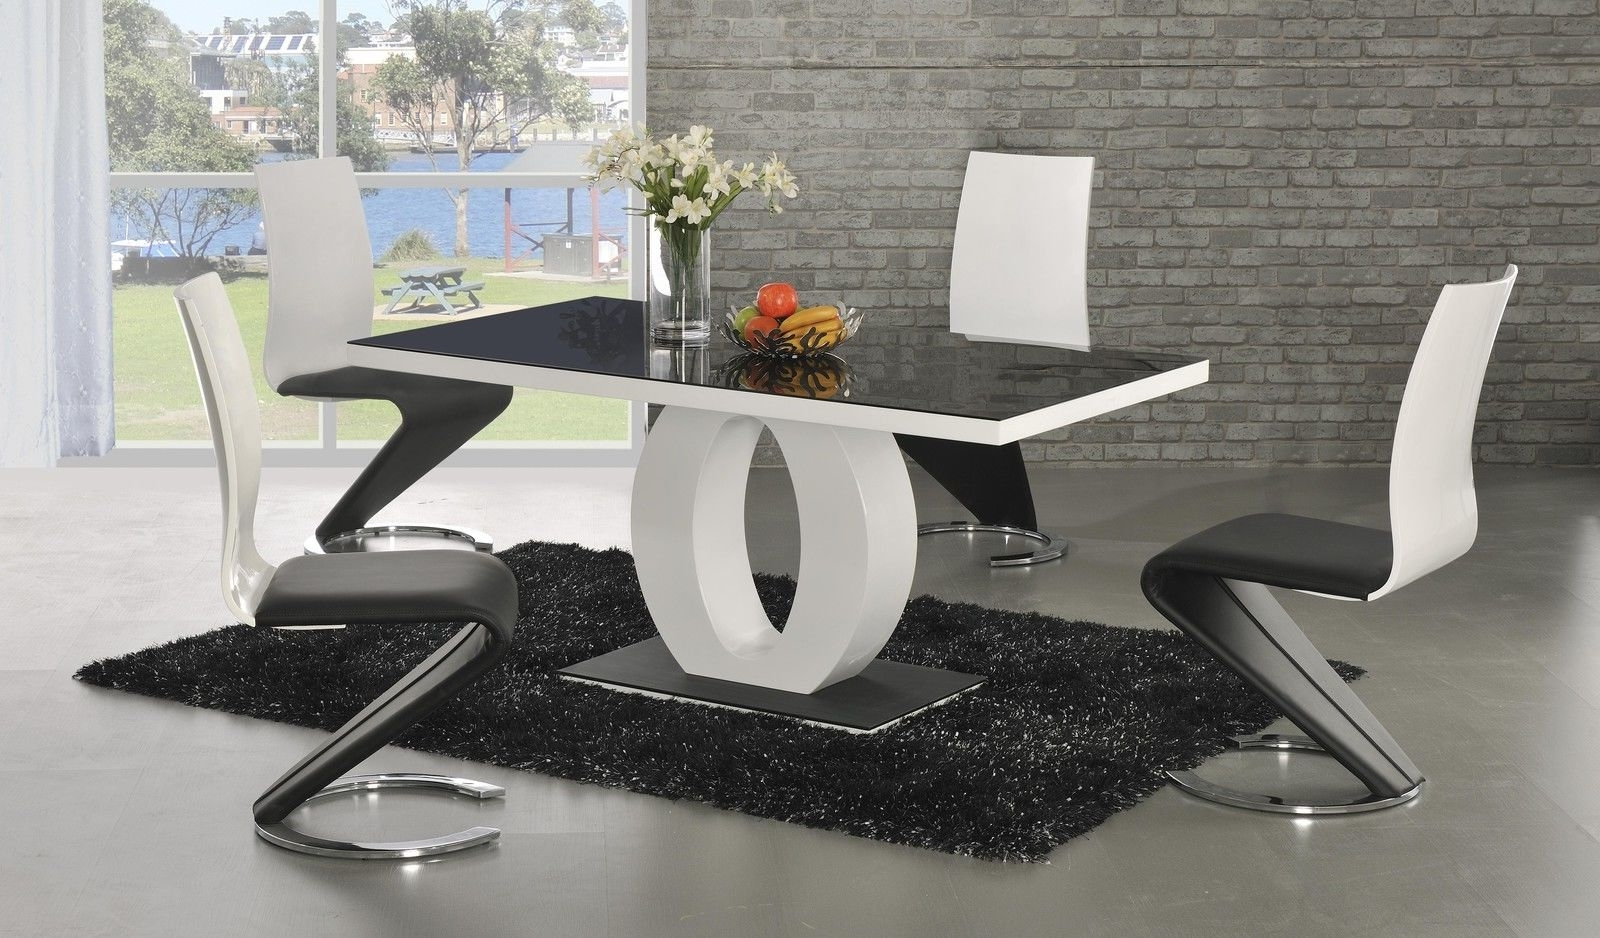 2018 Ga Angel Black Glass White Gloss 160 Cm Designer Dining Set 4 6 Z Within Black High Gloss Dining Tables And Chairs (View 13 of 25)